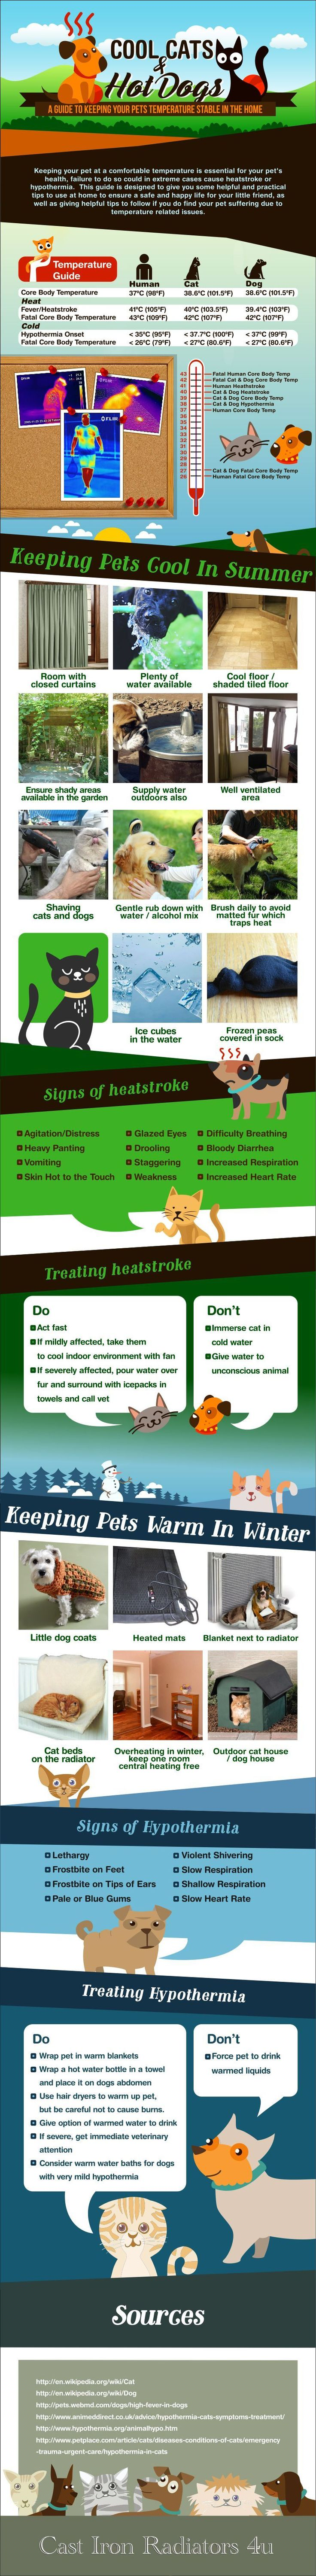 Summer's here and in full swing! With hot weather comes new needs for your furry friend. Fur can add to the summer heat and lead to heat stroke in pets, so it's important to be on the lookout for its symptoms and to know how to prevent it. #dog #cat #infographic